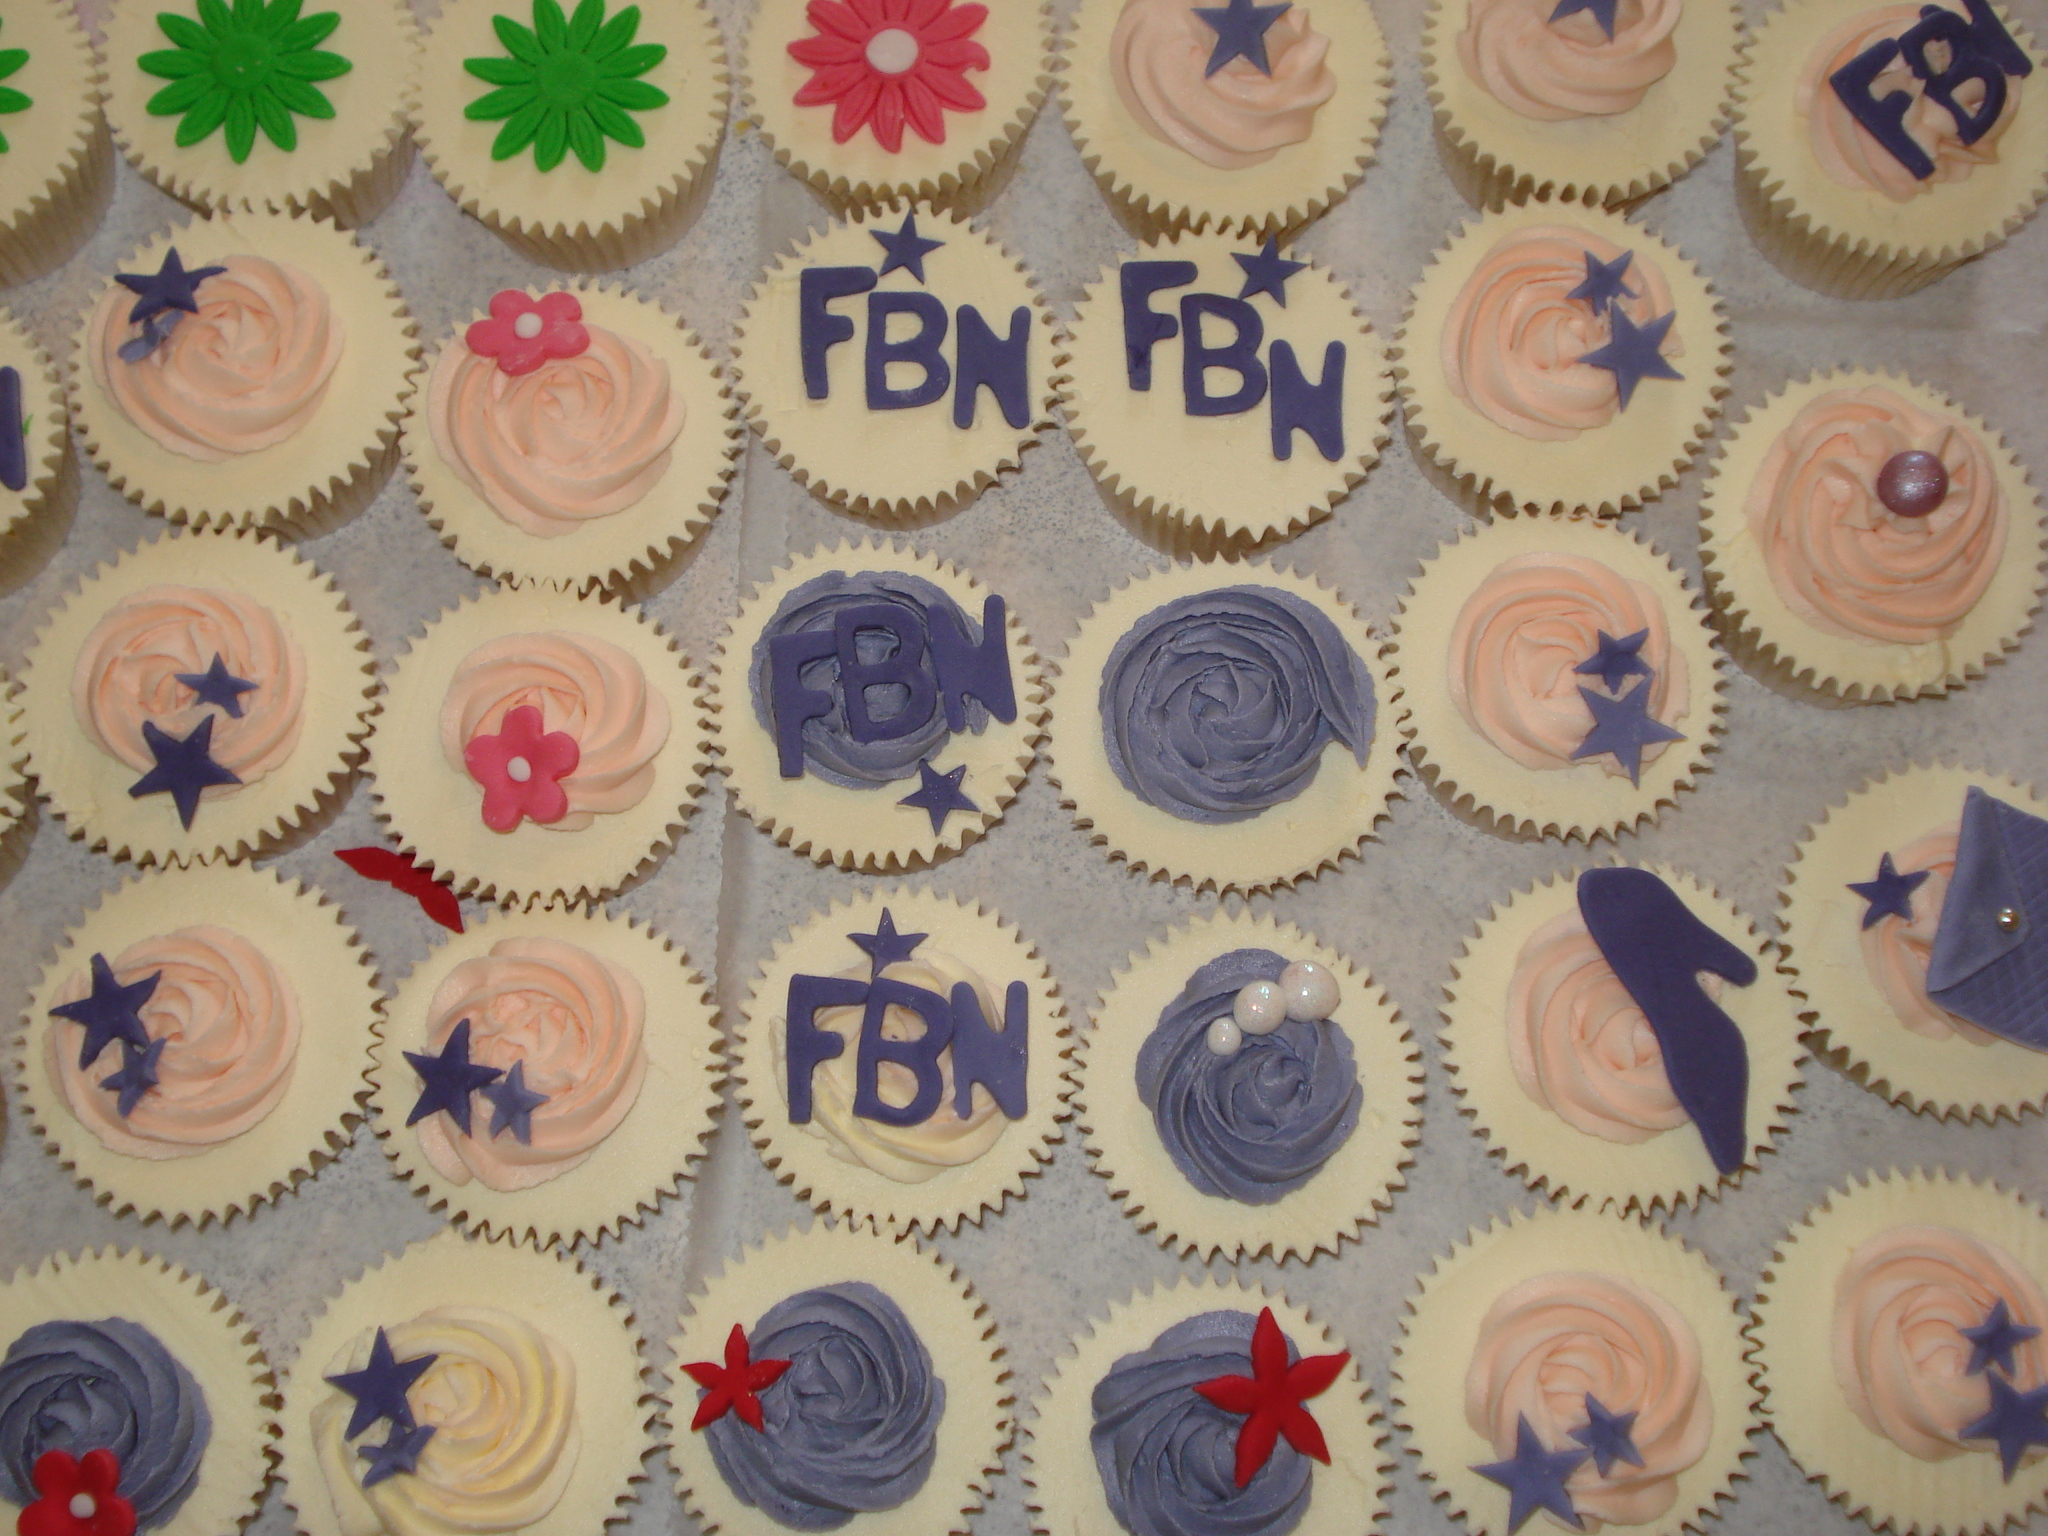 All the fashion cupcakes